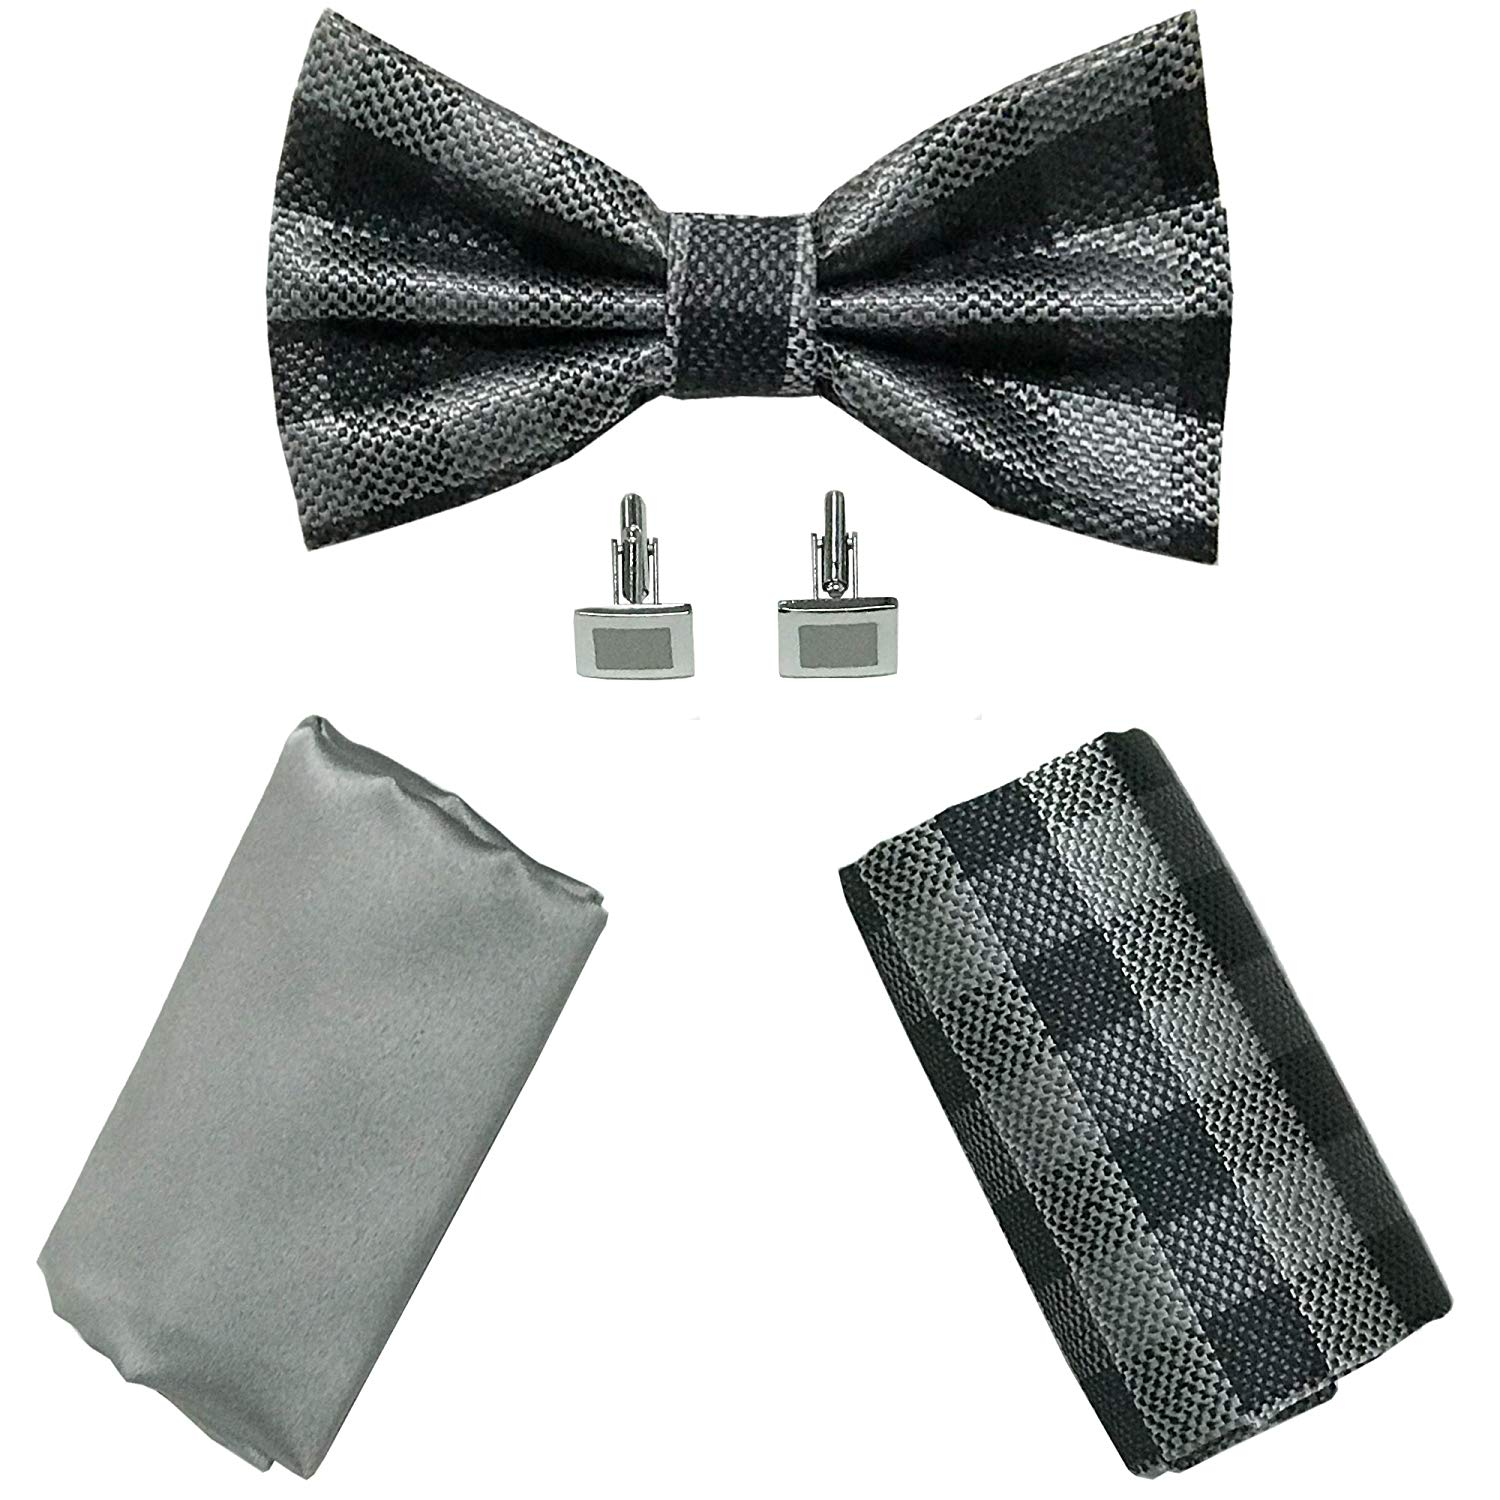 dc902f01be68 Get Quotations · PRE-TIED CHECK PLAID BOW TIE + 2 Pocket Square Hanky & 1  Cufflinks Tuxedo